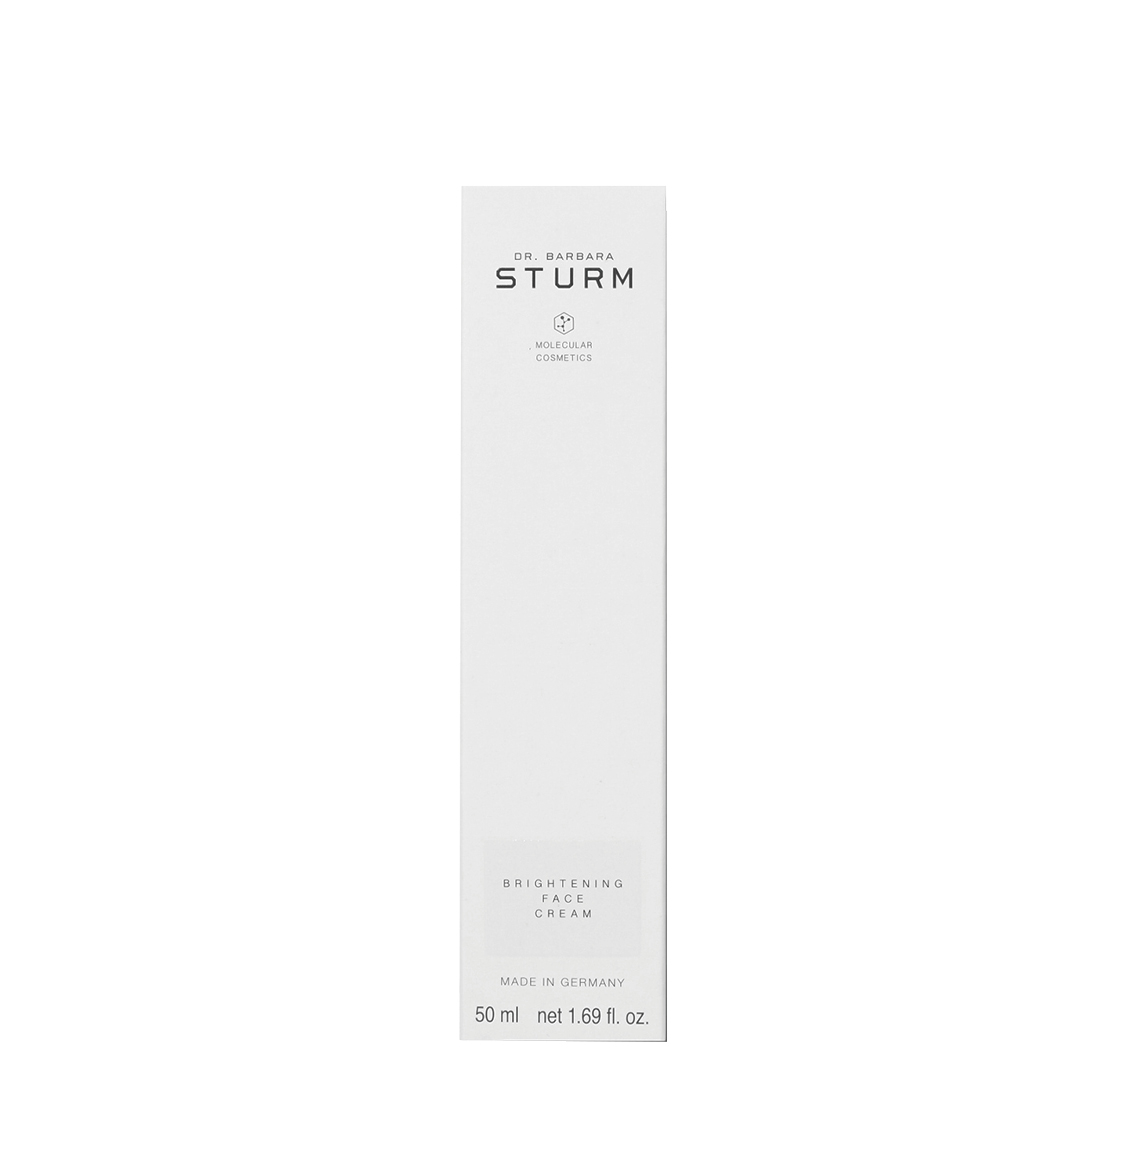 Dr. Barbara Sturm Brightening Face Cream 50ml